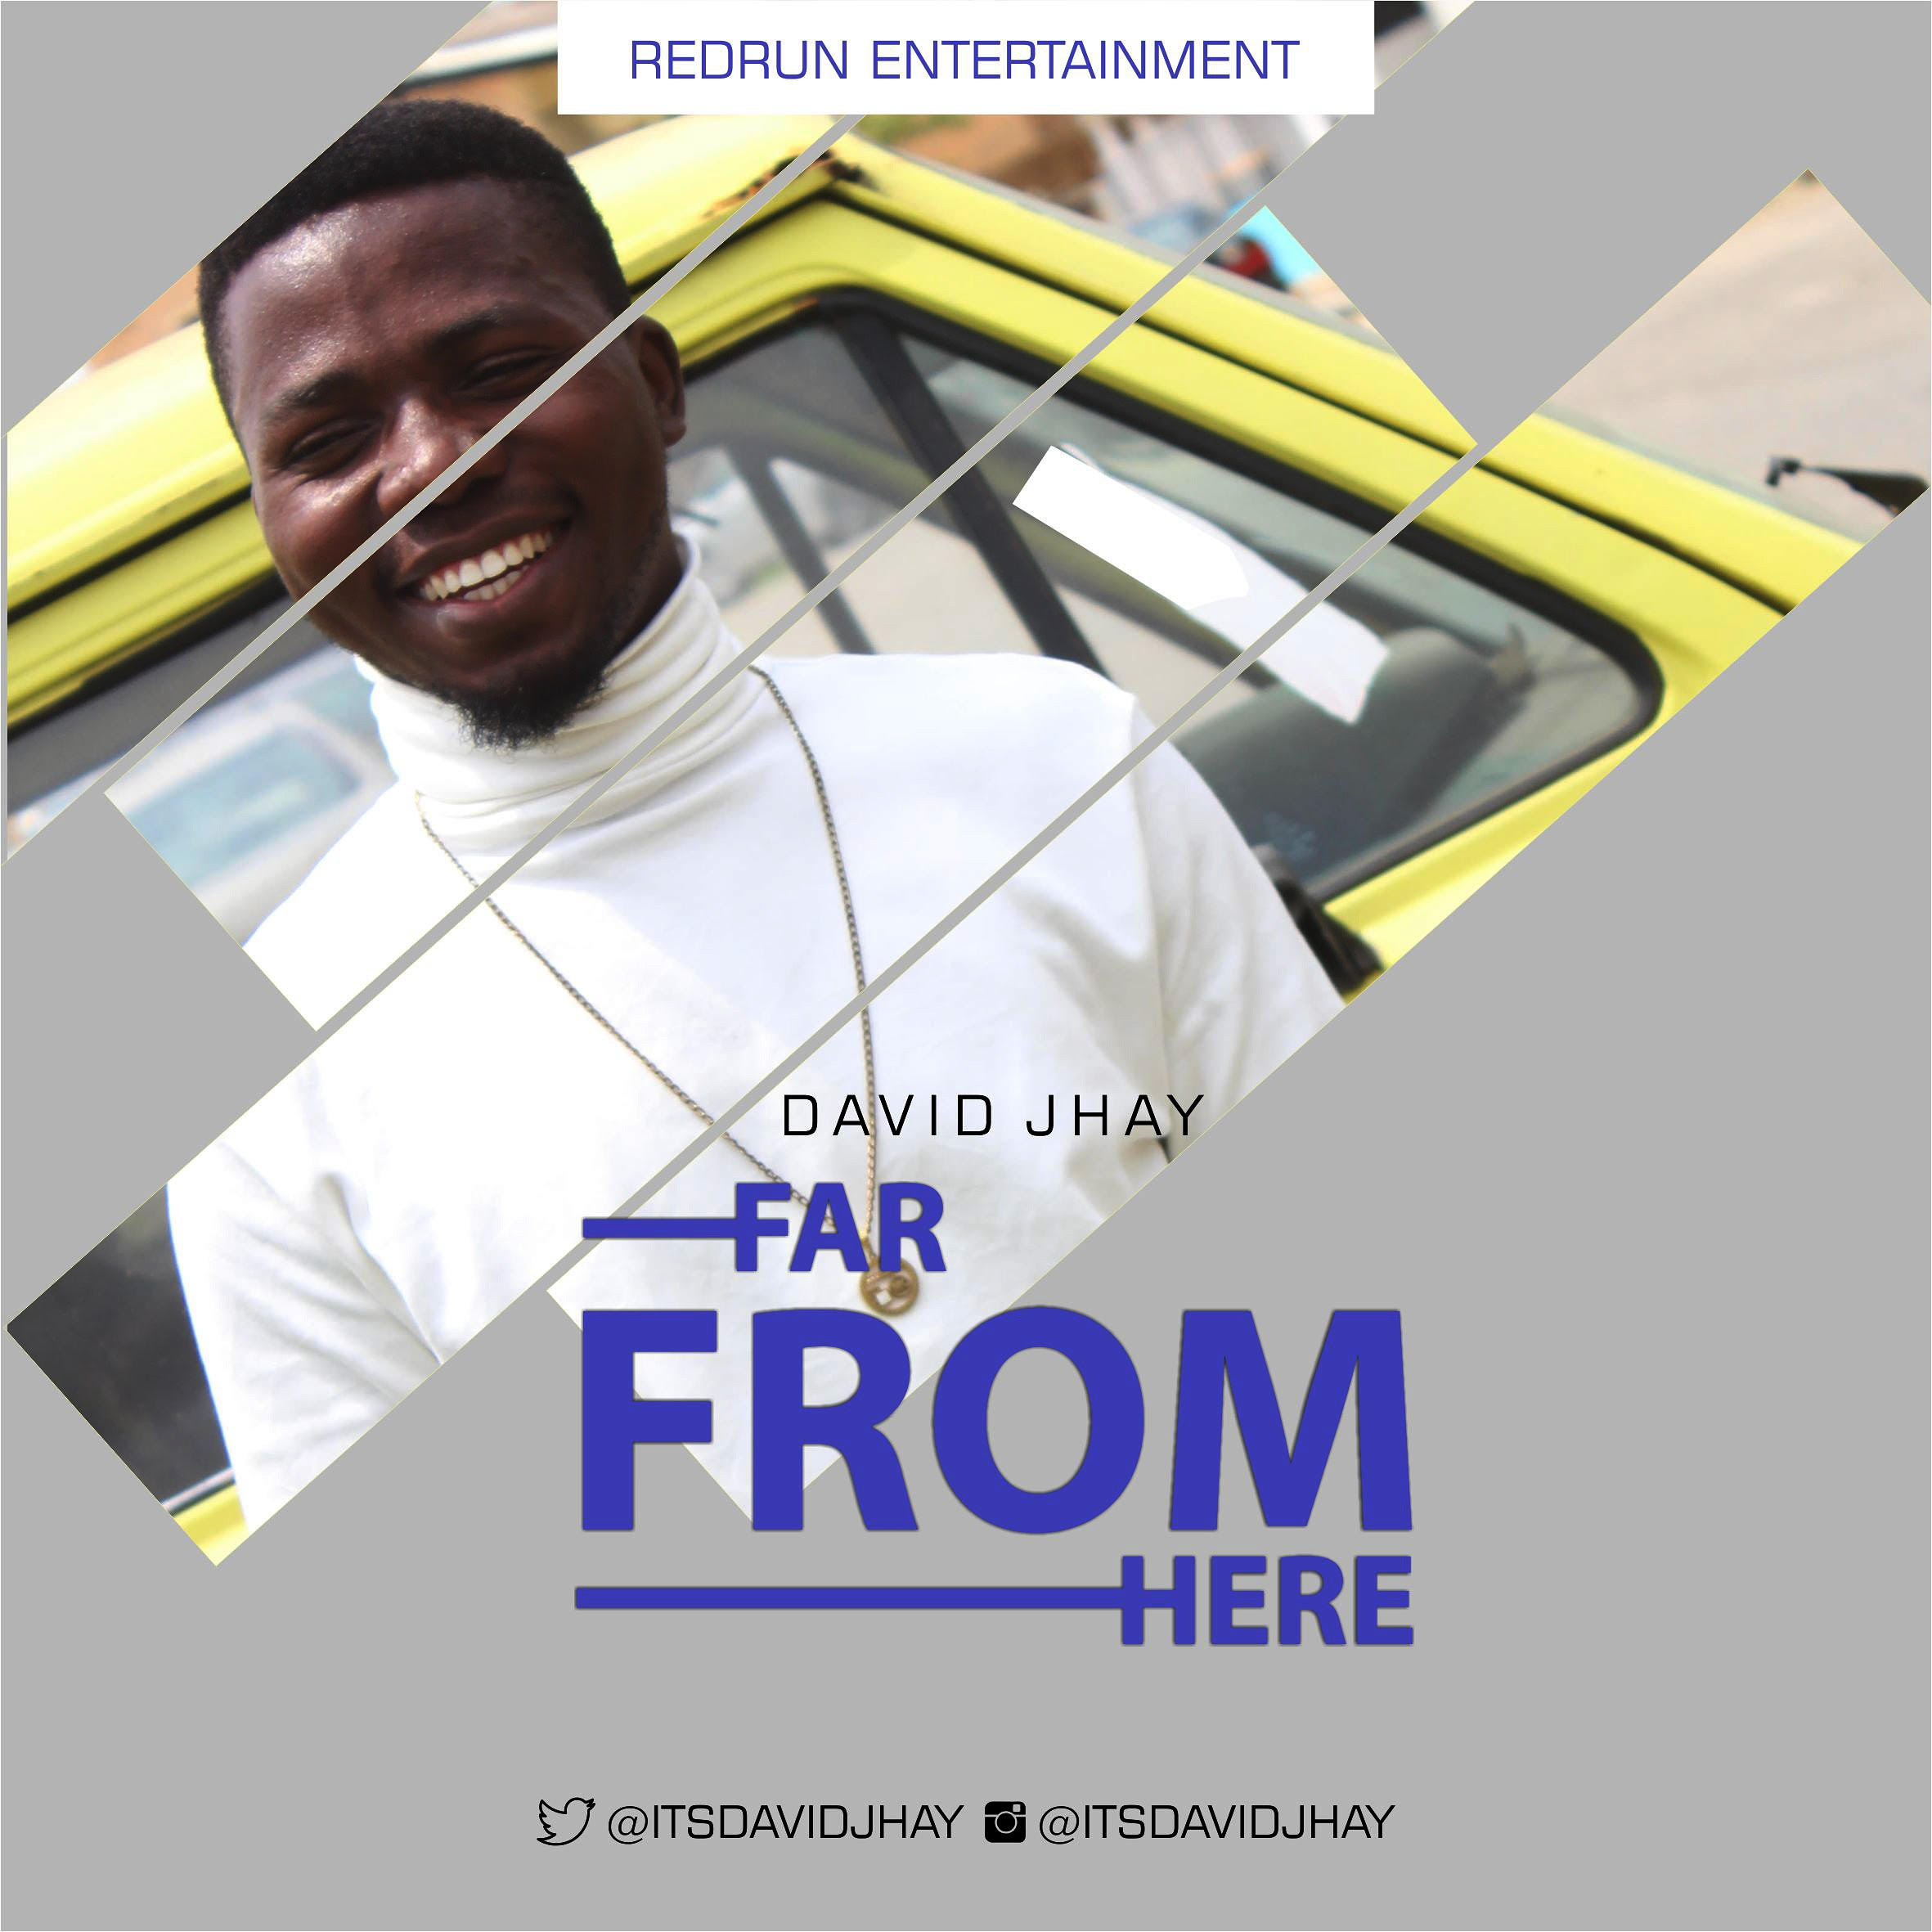 David Jhay - Far From Here